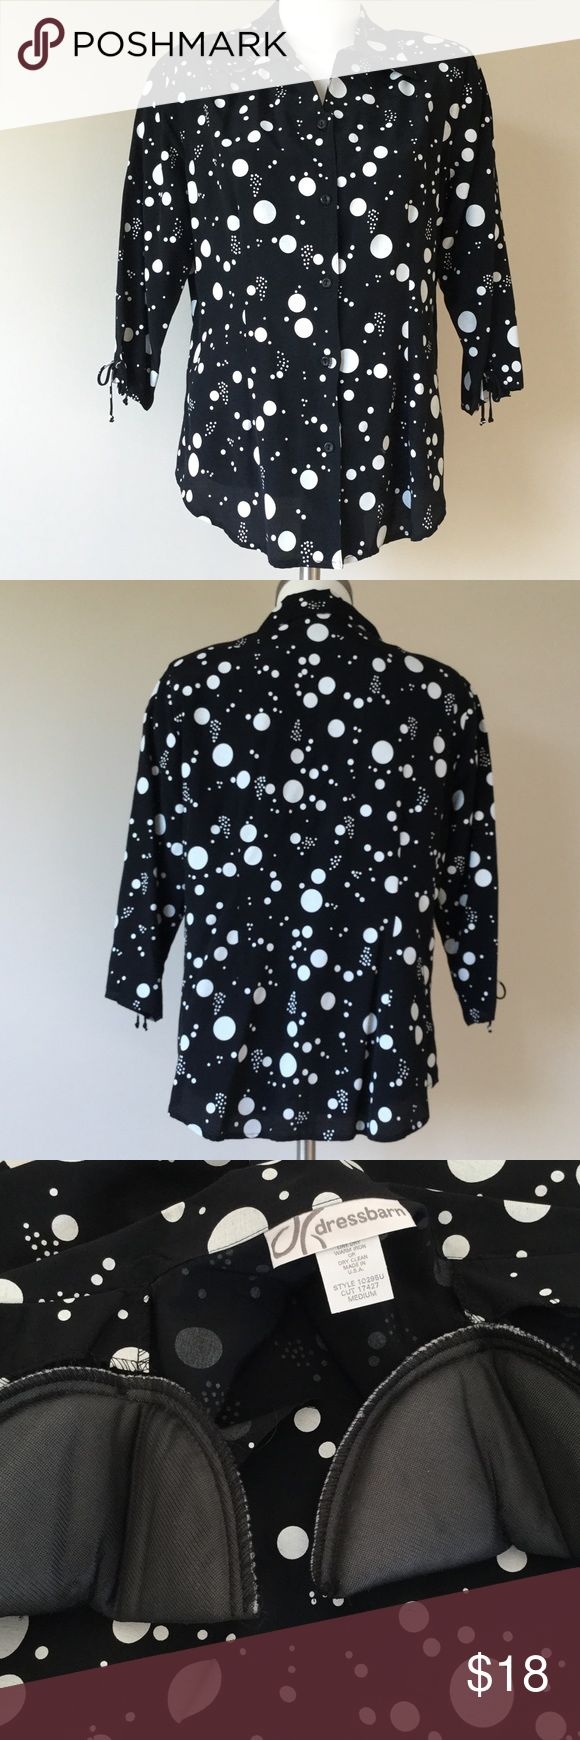 Dressbarn Polka Dot Blouse w/ shoulder pads 🆕 DressBarn Black and White Polka Dot Blouse. A beautiful soft and flowing blouse featuring shoulder pads, and white polkadots of various sizes. Excellent condition! 53% acetate 47% rayon. Size medium. Dress Barn Tops